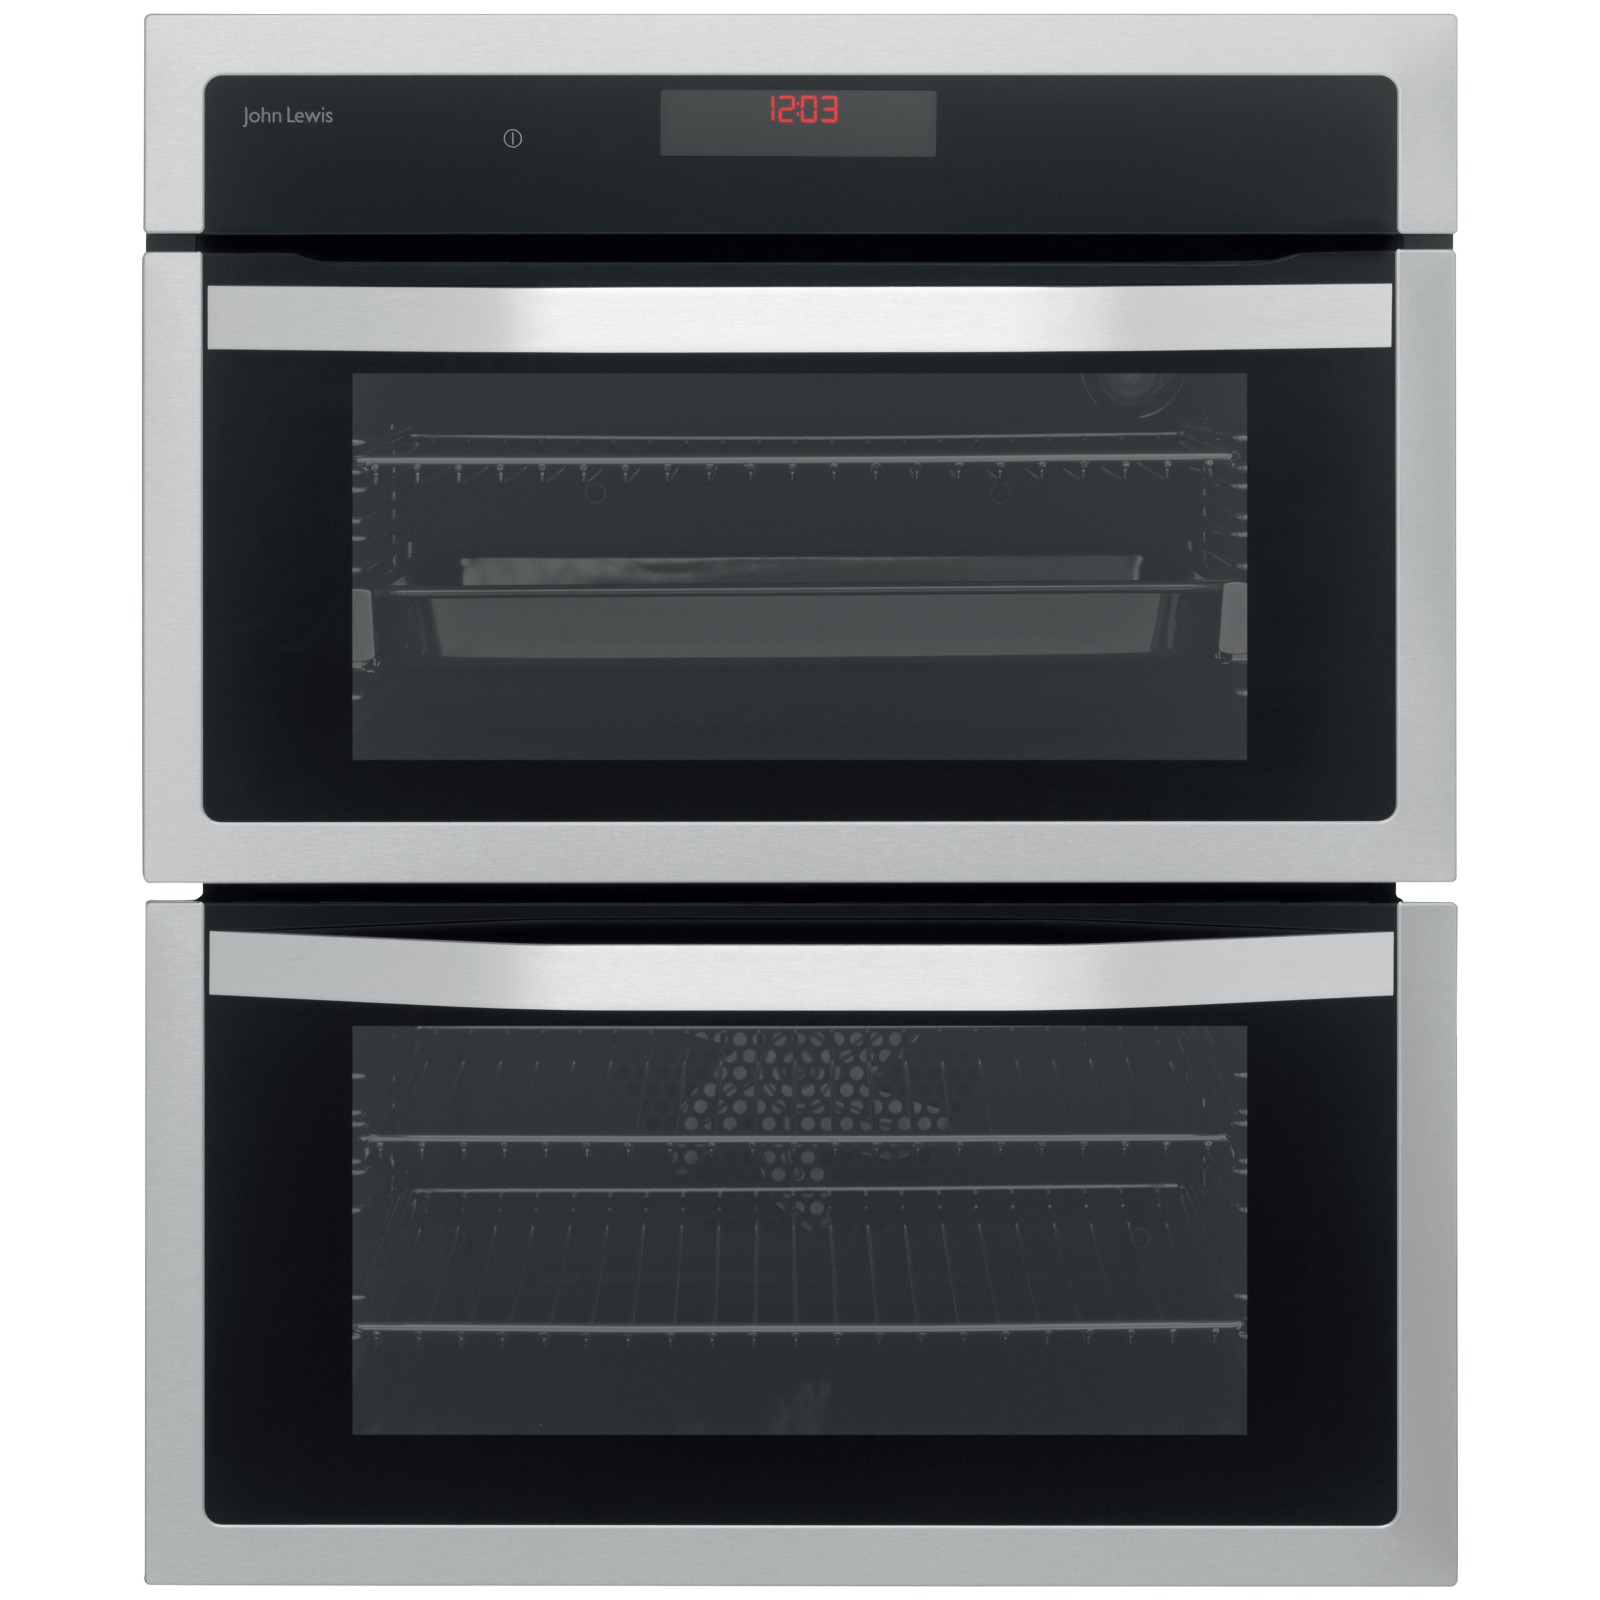 John Lewis JLBIDU713 Double Built-Under Electric Oven